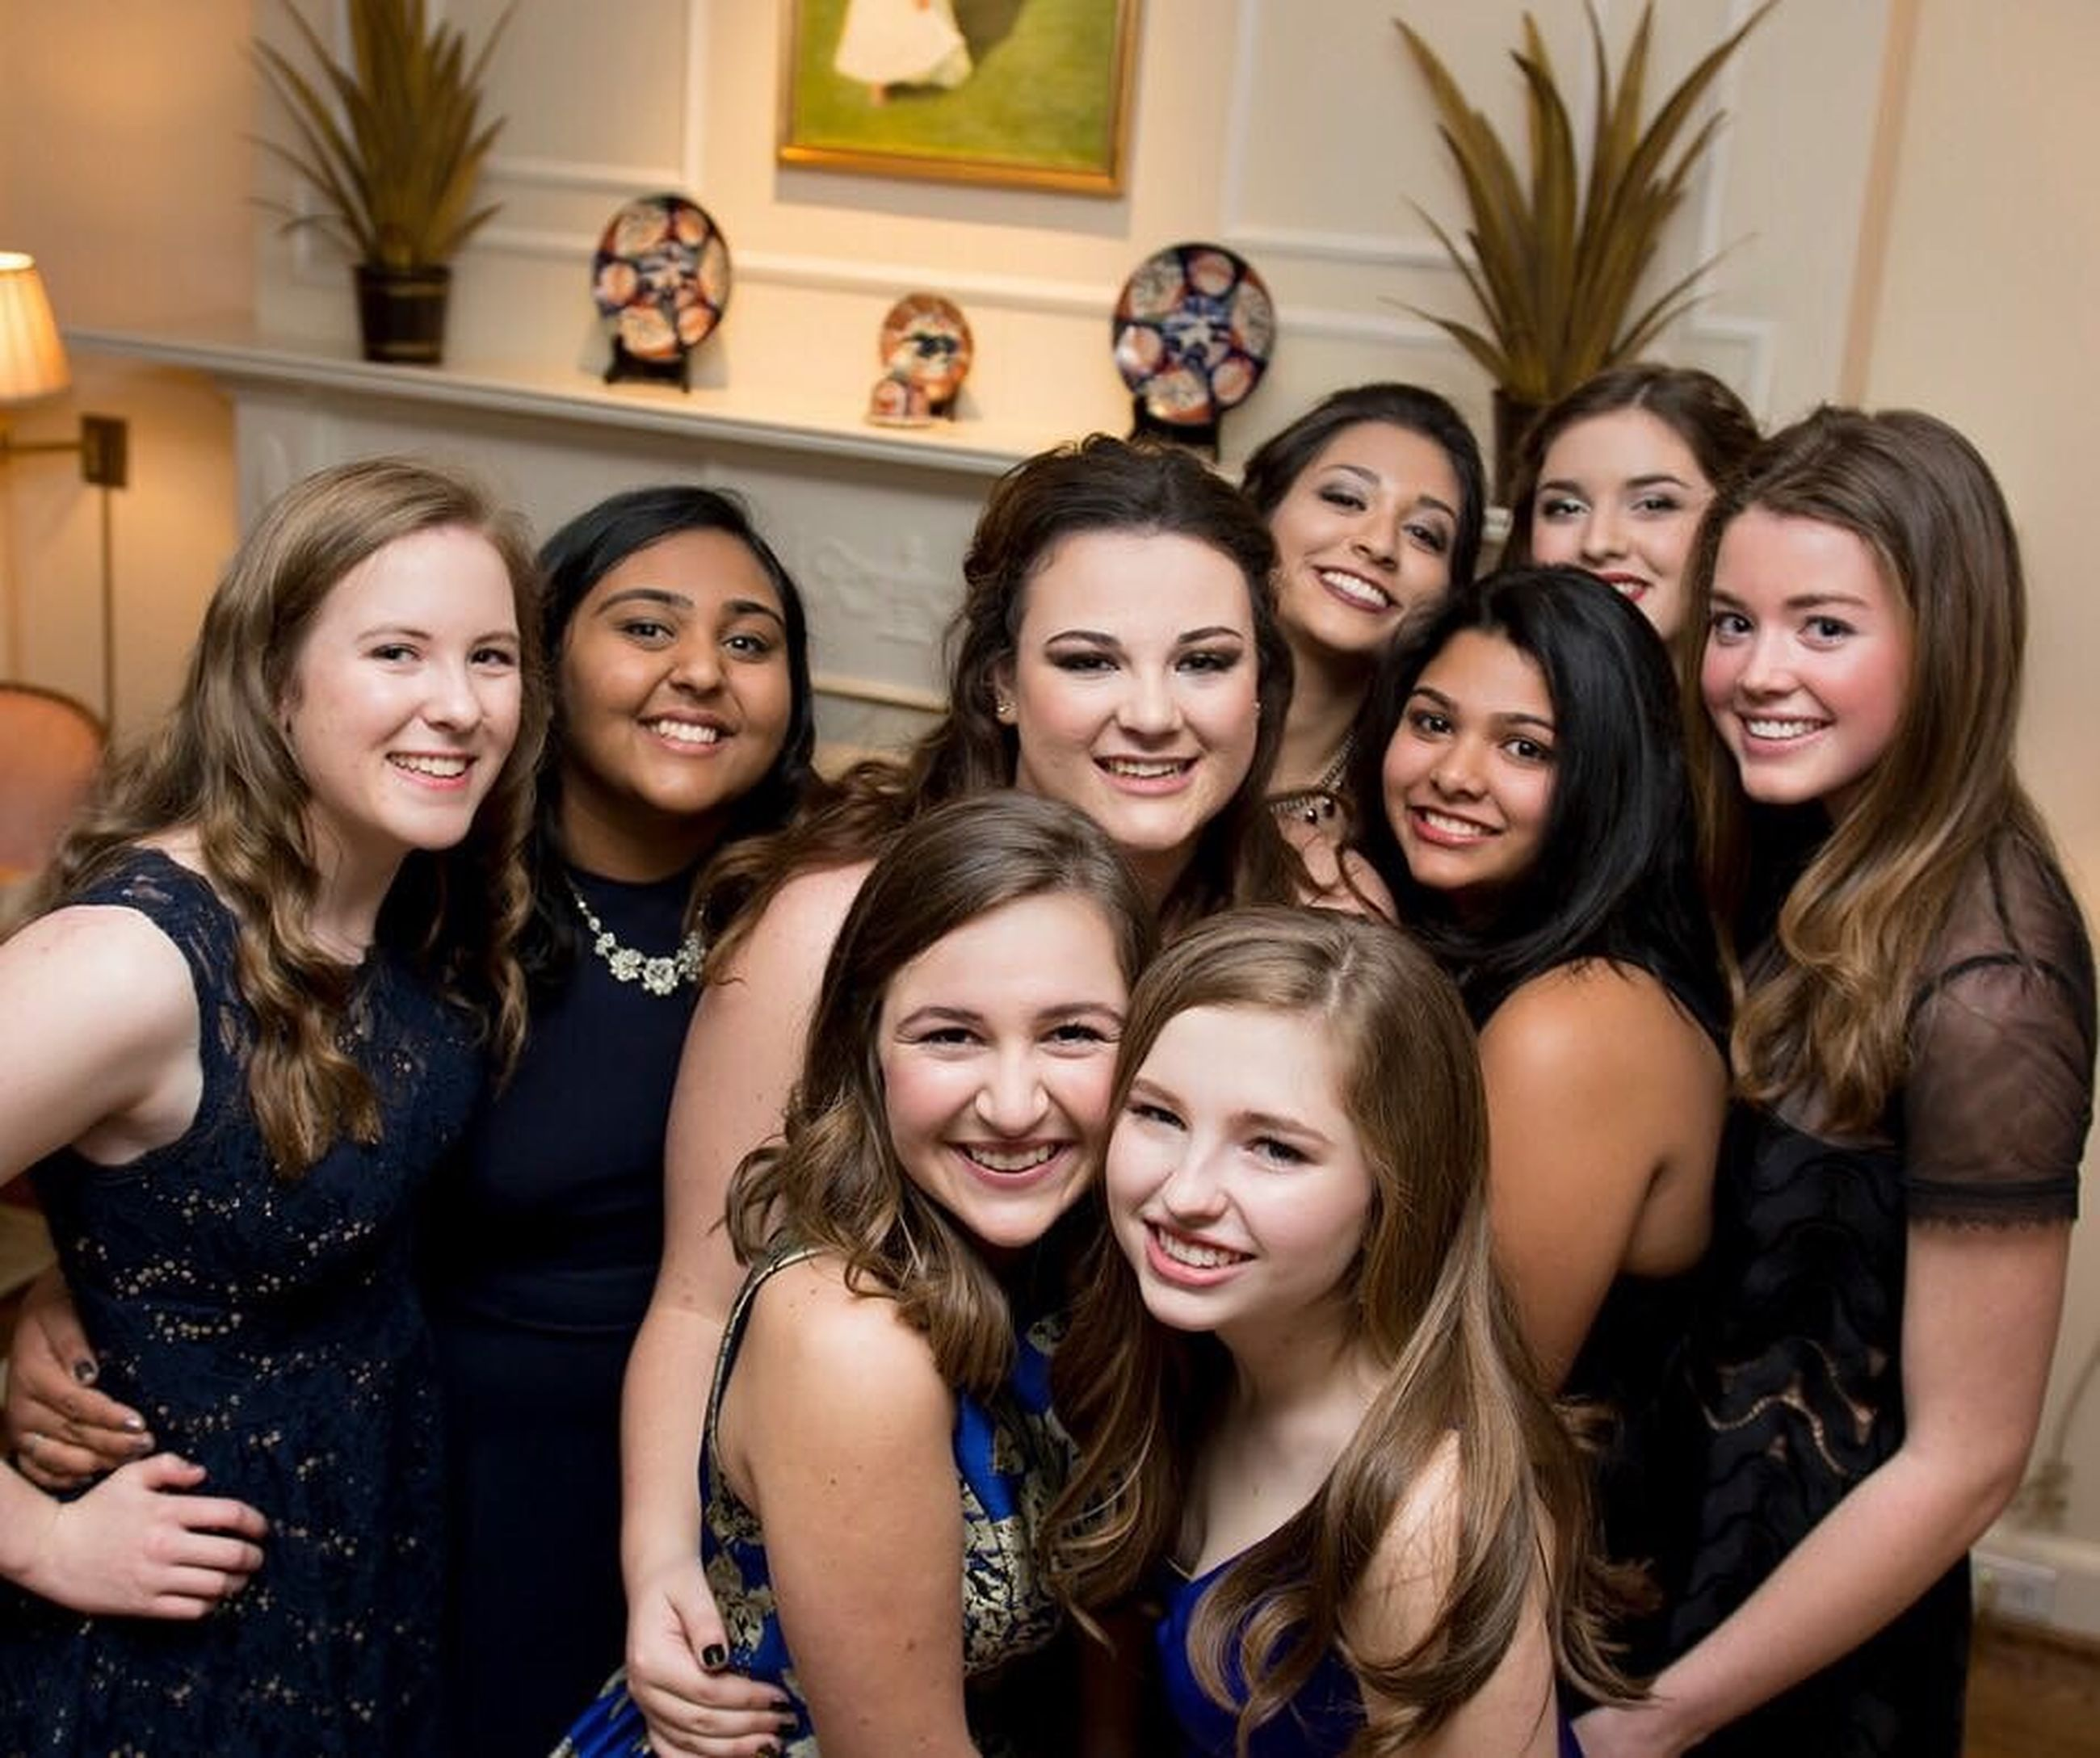 togetherness, lifestyles, leisure activity, indoors, large group of people, friendship, happiness, bonding, young women, person, young adult, celebration, smiling, front view, fun, portrait, looking at camera, enjoyment